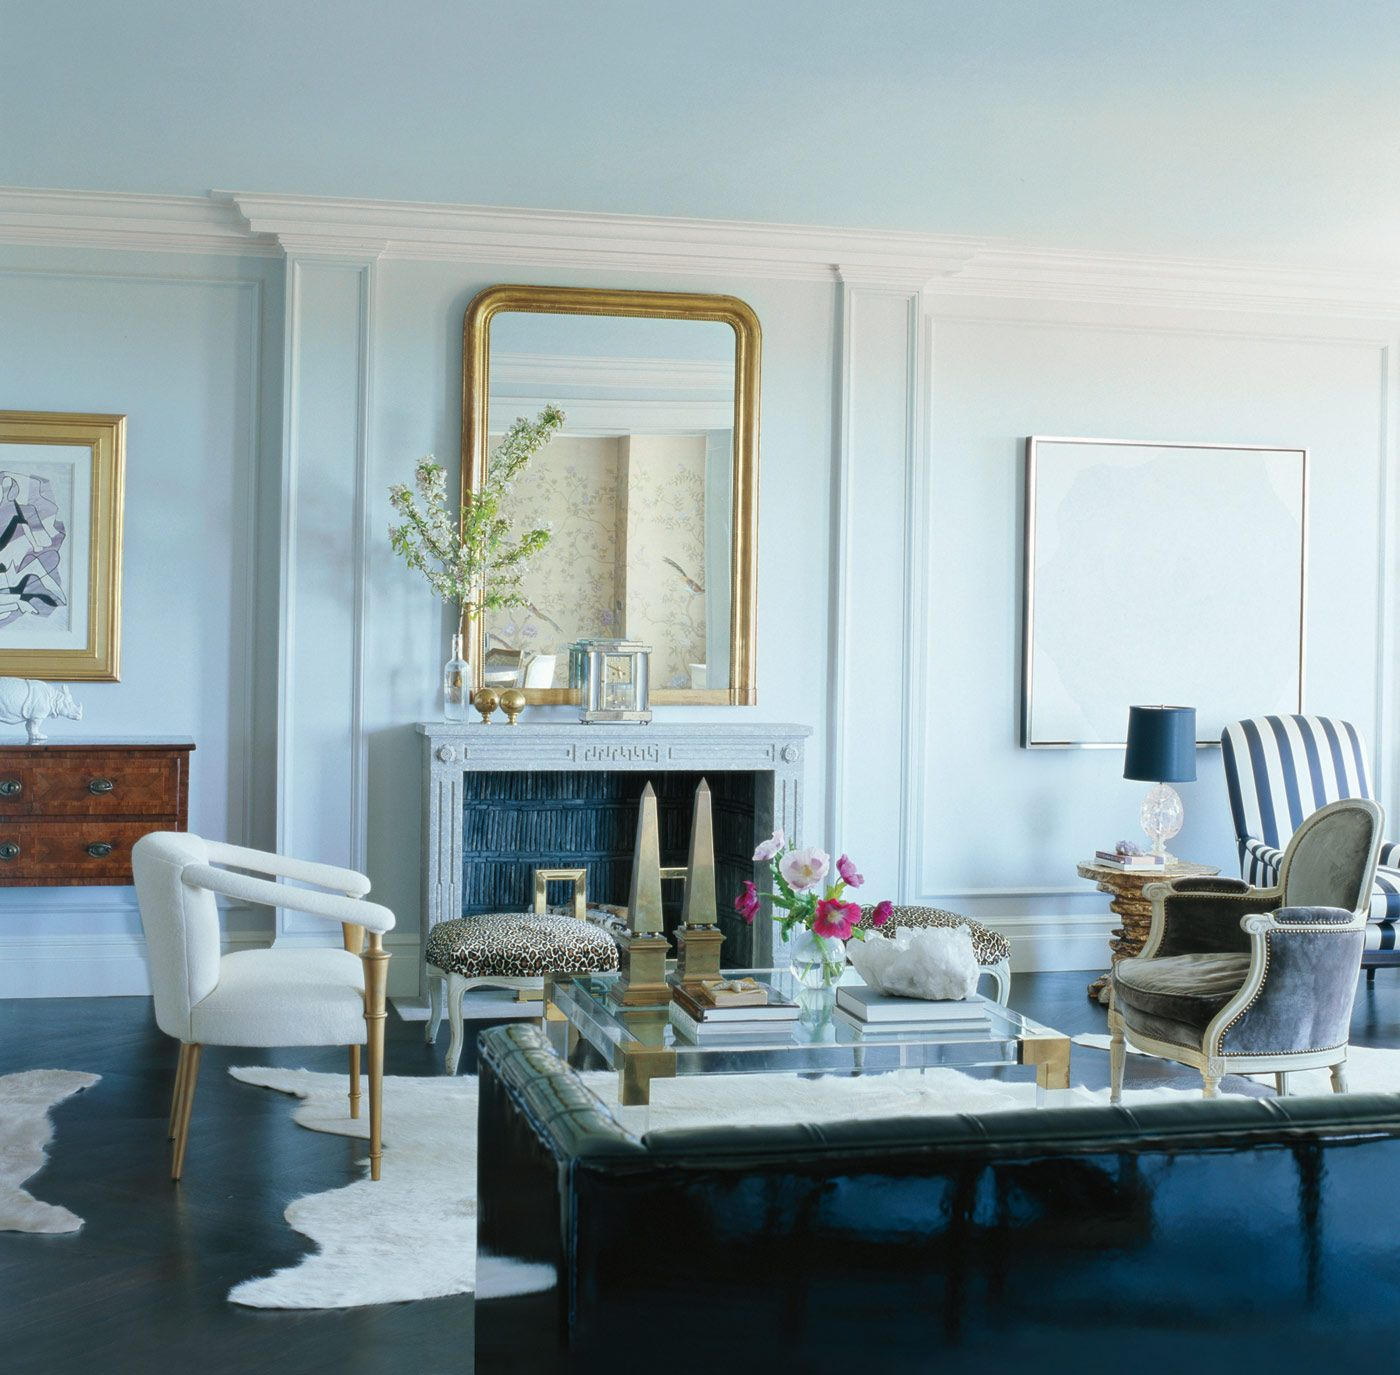 Anne Coyle and Nate Berkus Design Ideas - Chic Home Decor